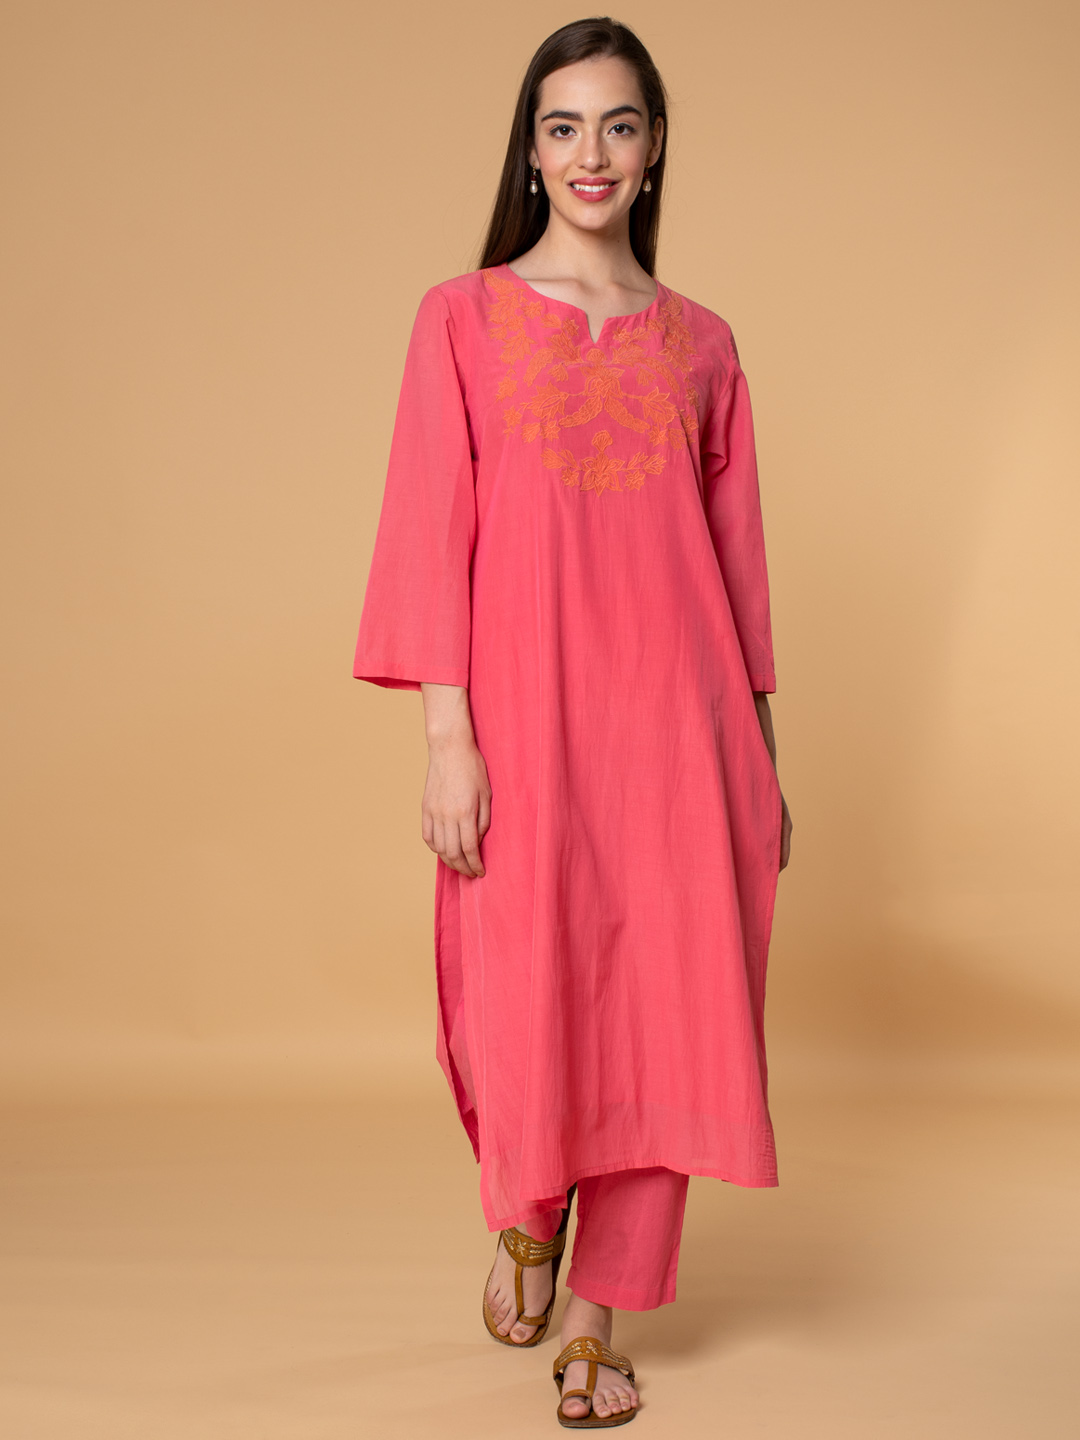 Pink Applique Embroidered Cotton Silk Kurta with Pants - Set of 2